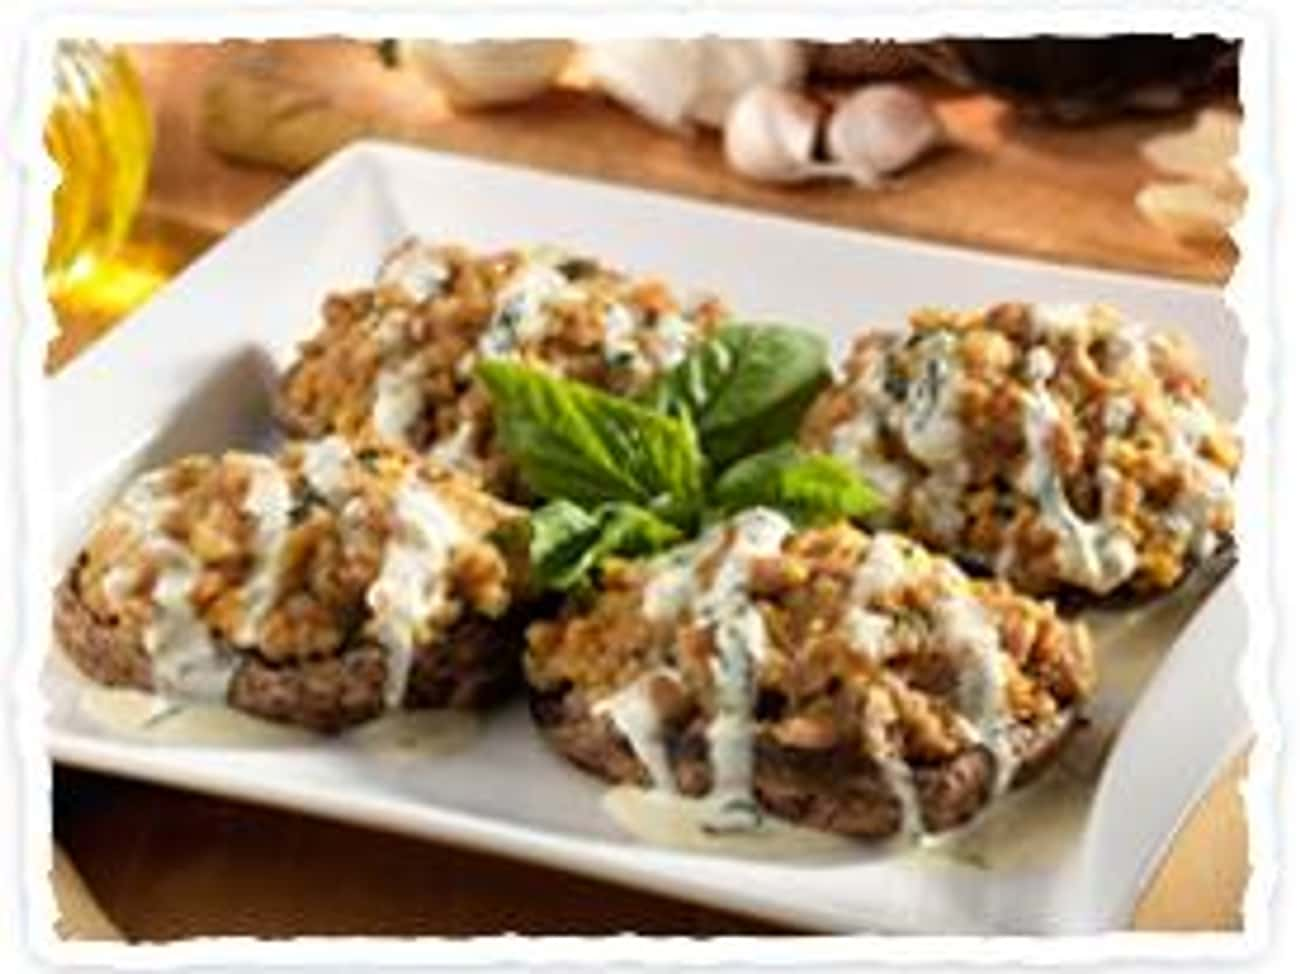 Italian Sausage Stuffed Portob is listed (or ranked) 3 on the list Olive Garden Recipes